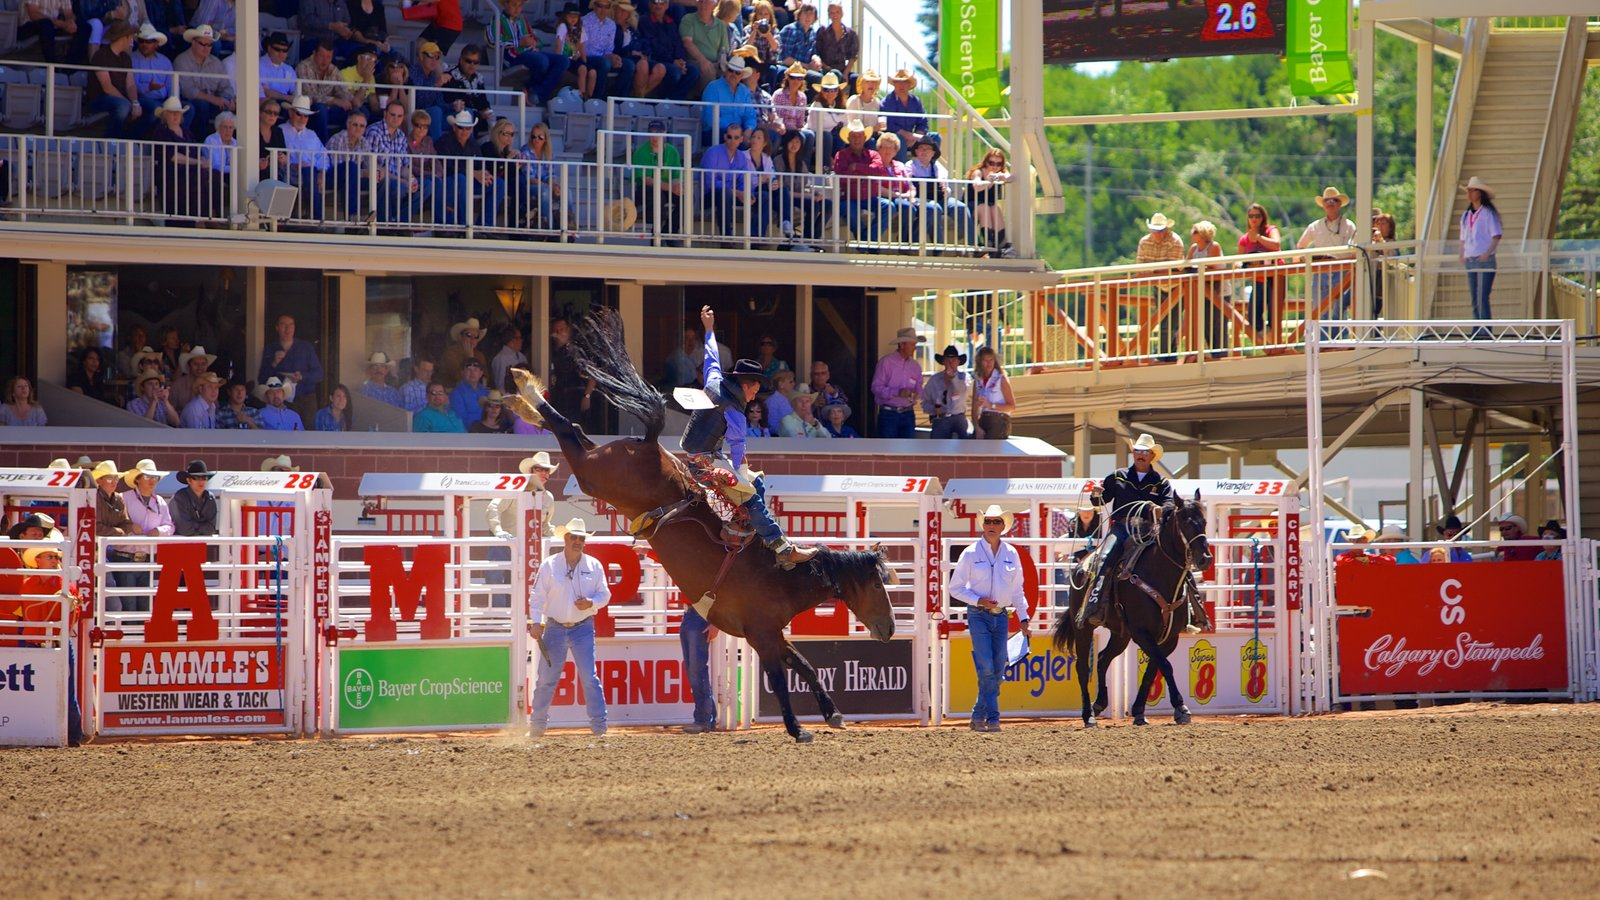 Calgary showing horse riding and a sporting event as well as a large group of people